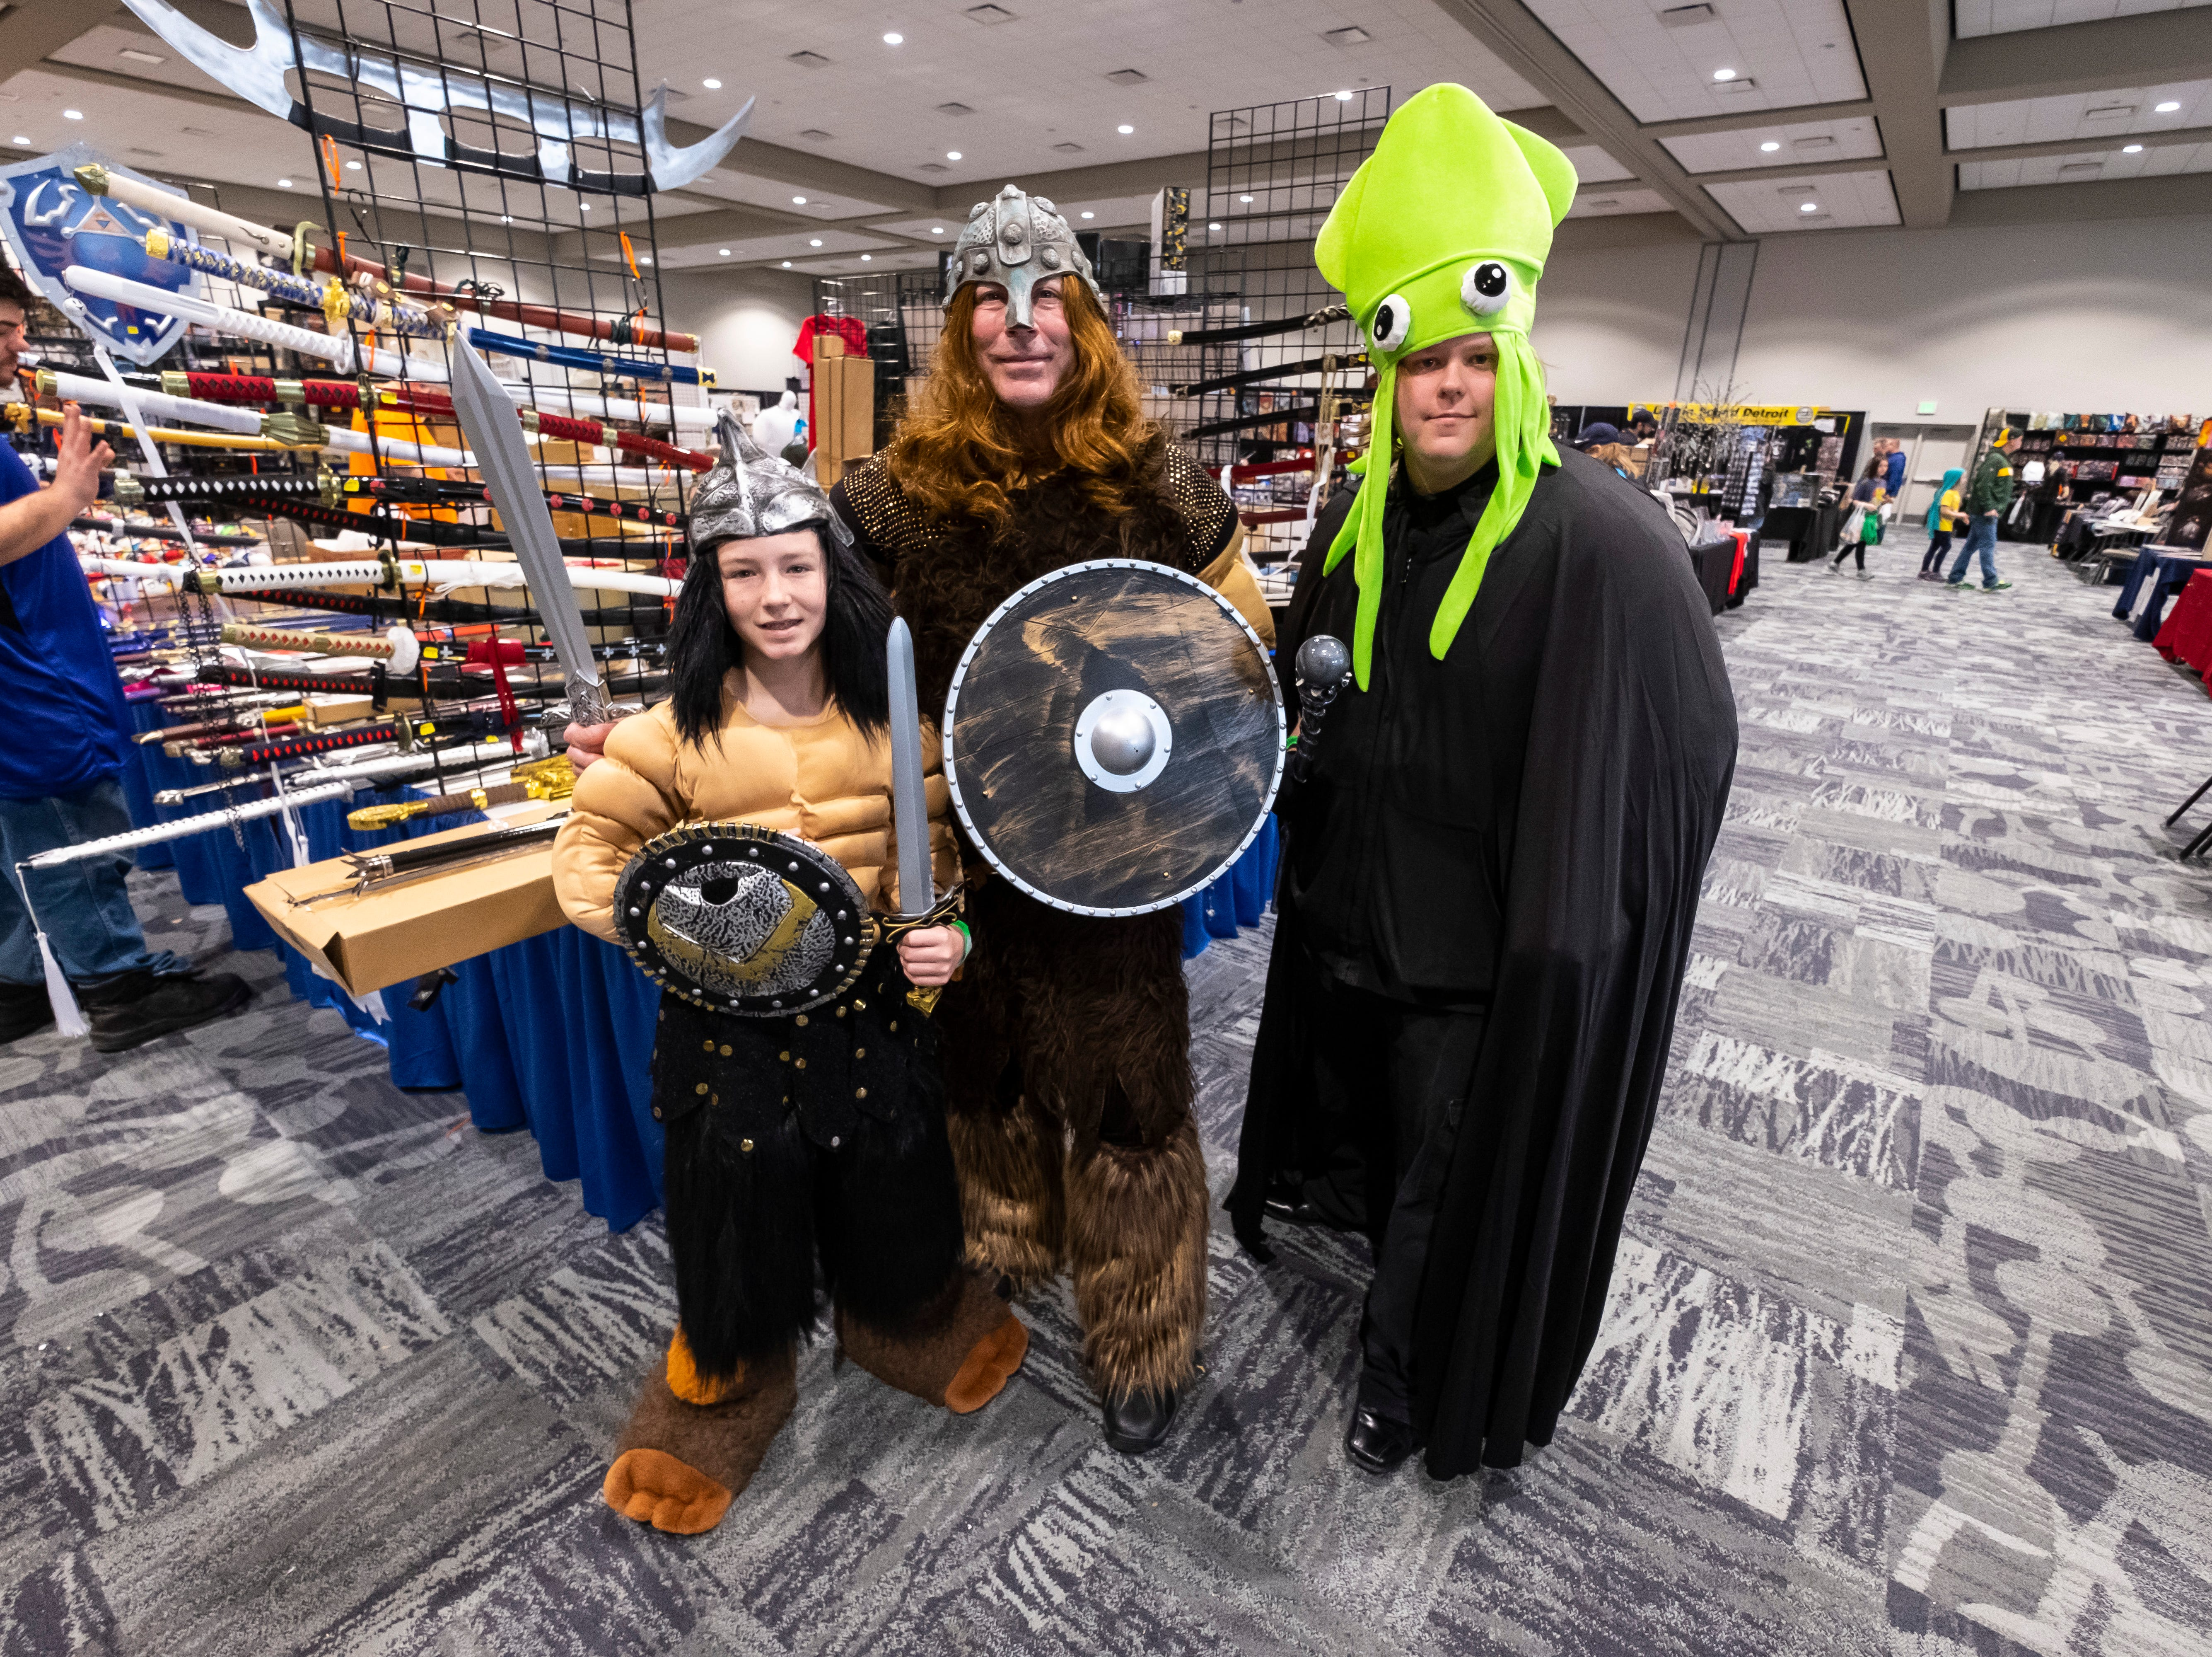 Jeff DeBell, center, of St. Clair, poses in costume with his son Logan, 11, left, and their friend Jared Smith, of Port Huron, Saturday, March 30, 2019 during Blue Water International Comic-Con.